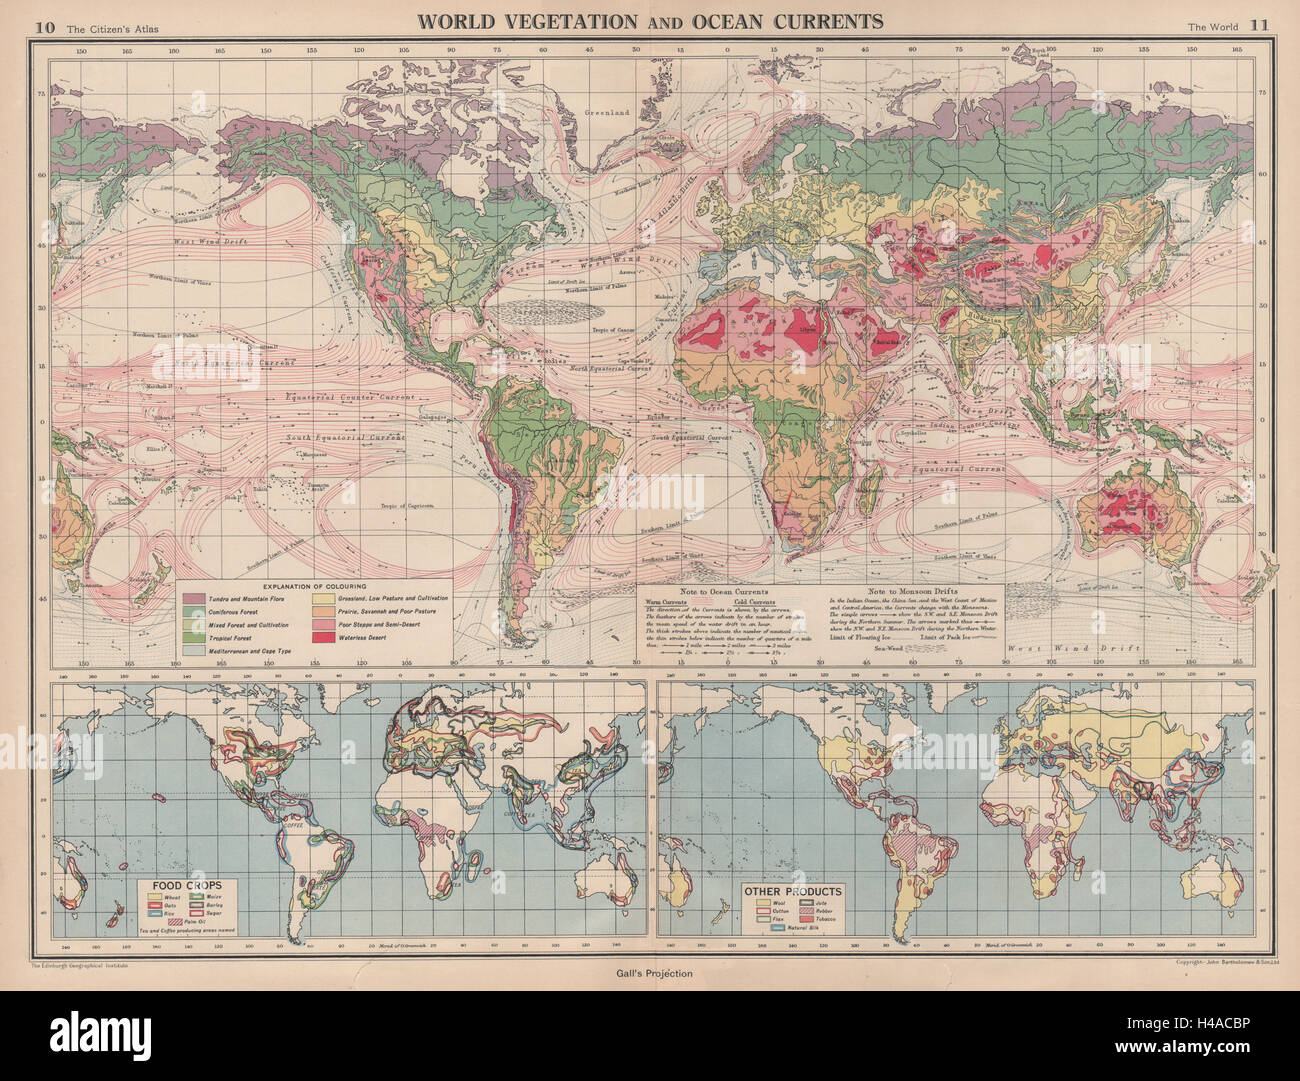 WORLD. Vegetation. Ocean Currents. Food crops. Agricultural commodities 1944 map - Stock Image